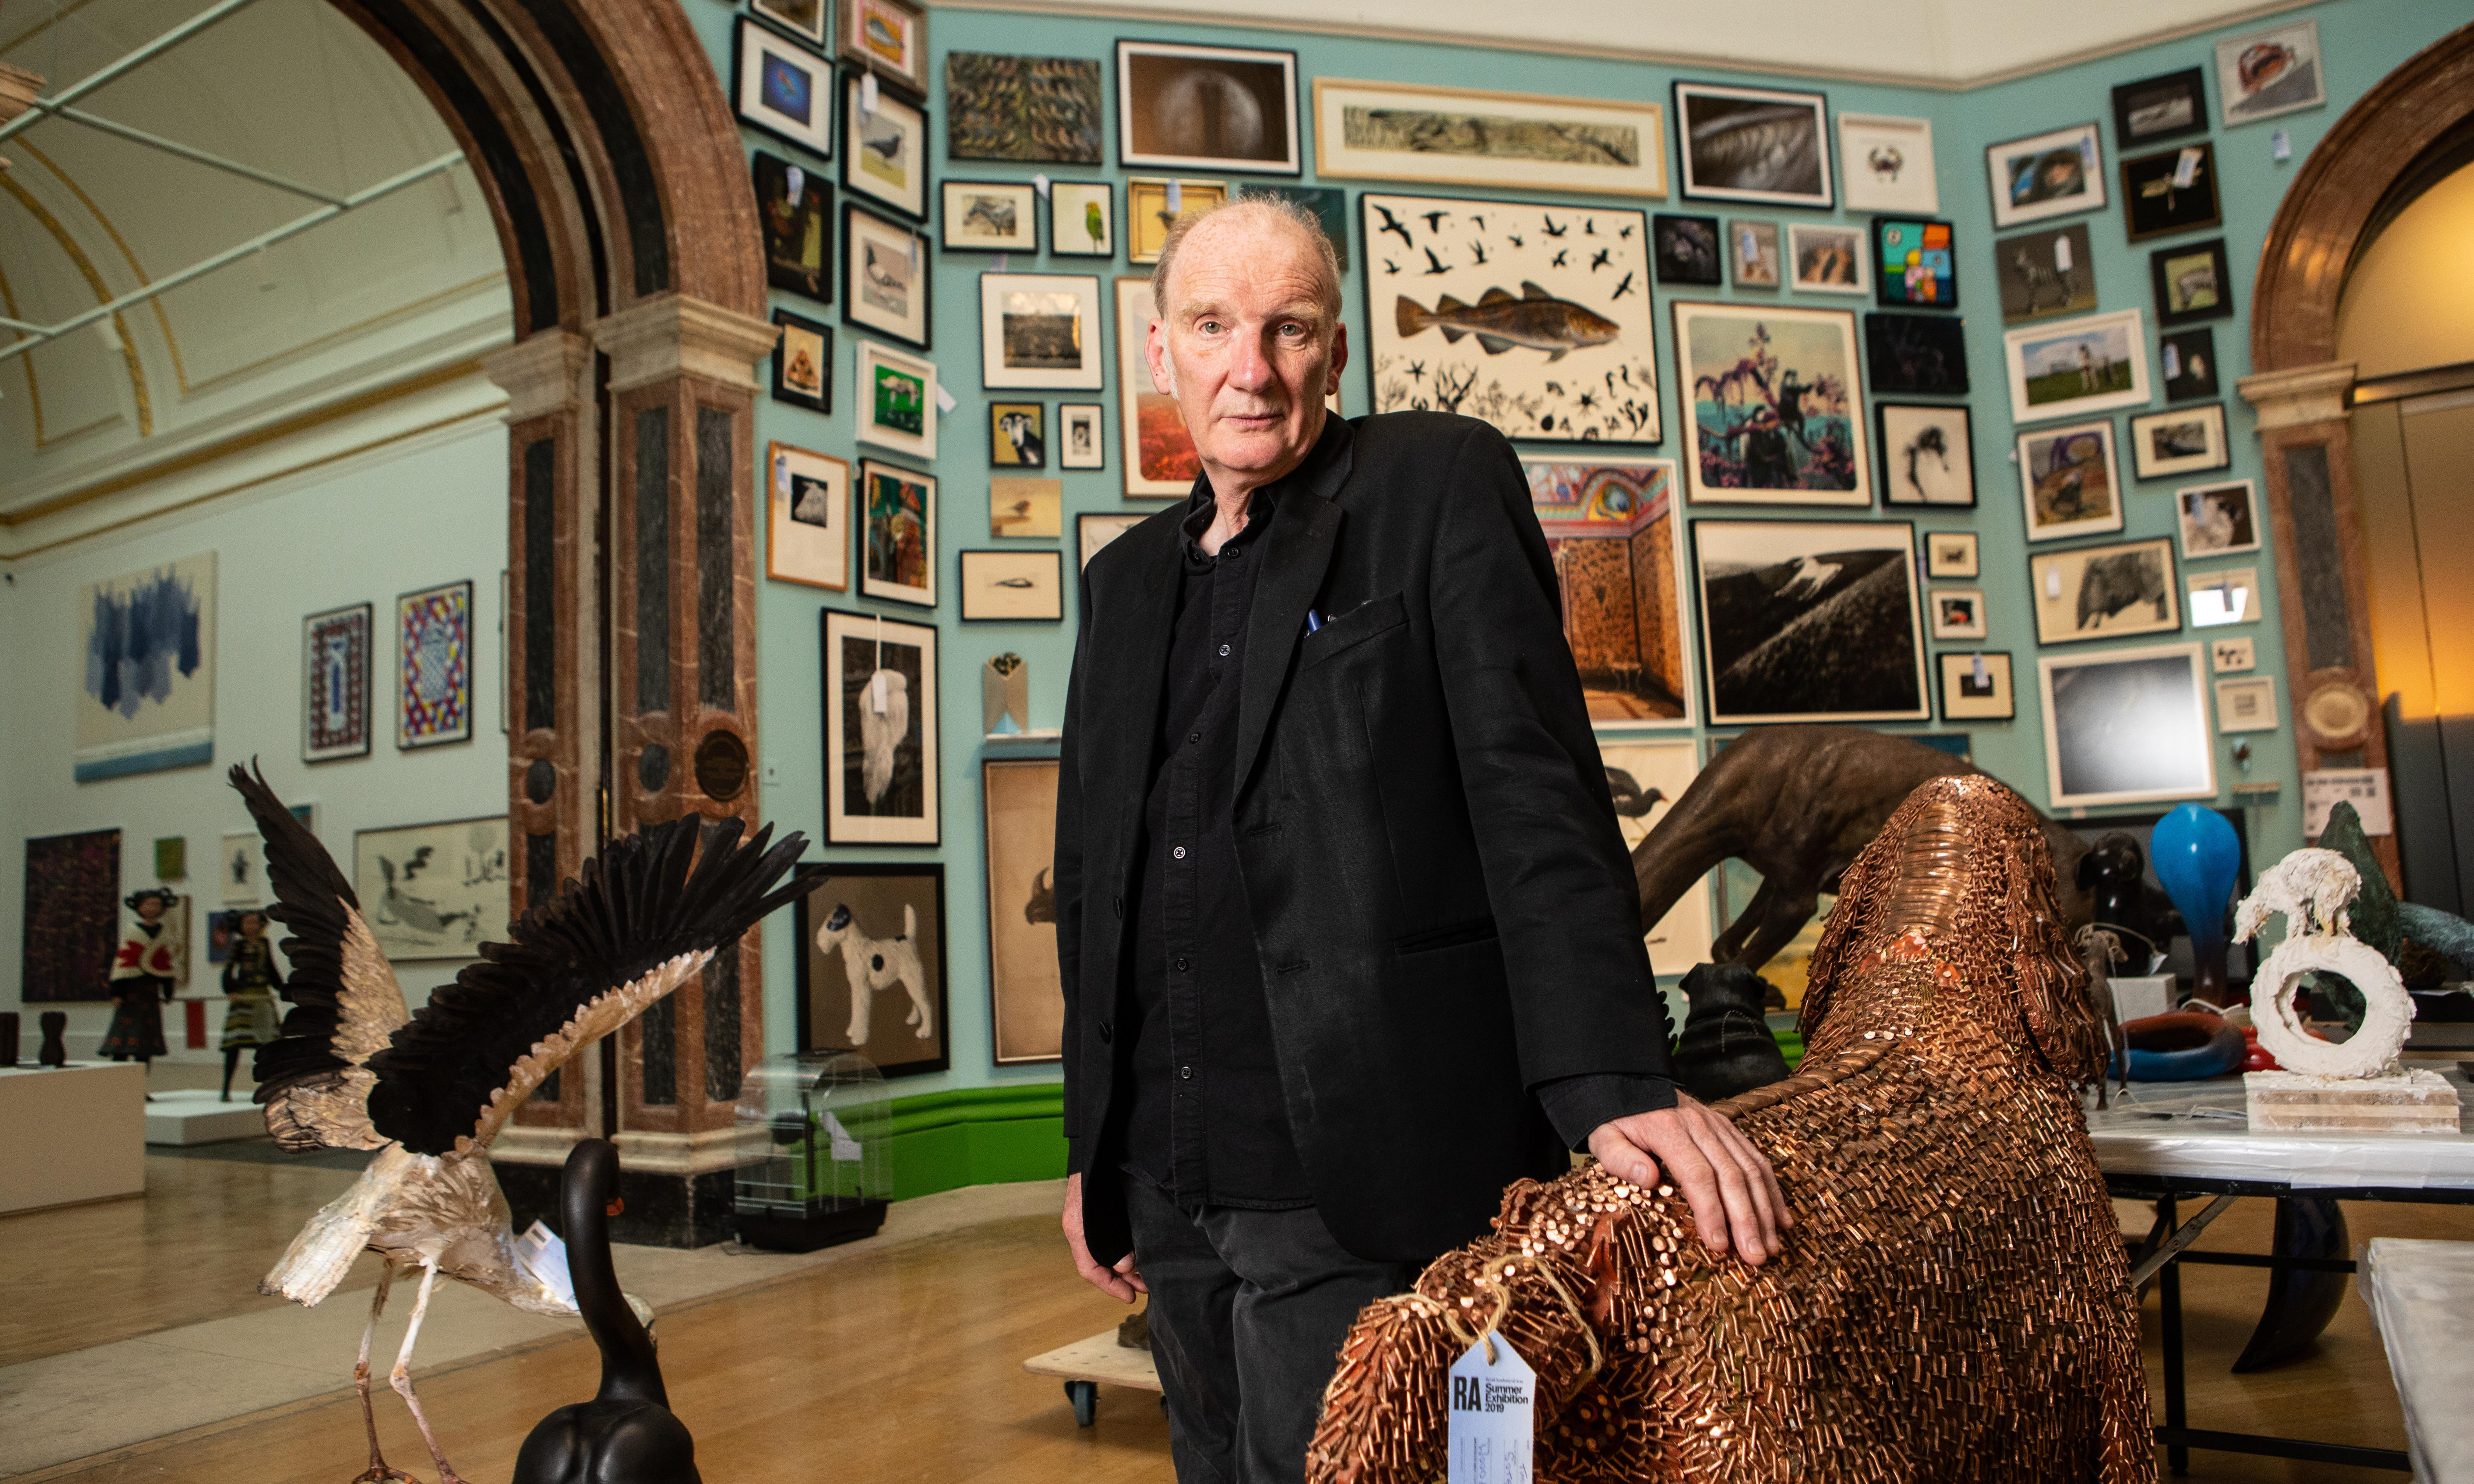 Jock McFadyen, the artist bringing the spirit of punk to the Royal Academy